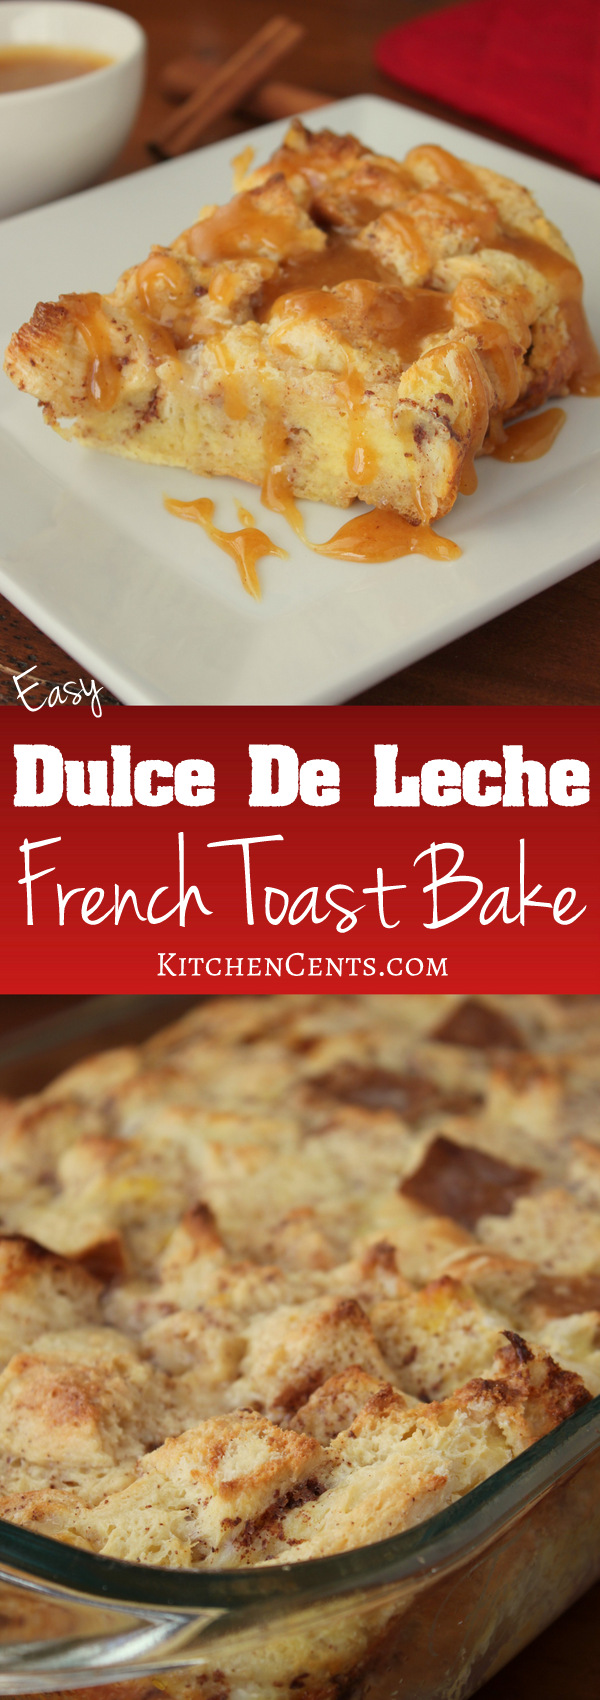 easy-dulce-de-leche-french-toast-bake | KitchenCents.com